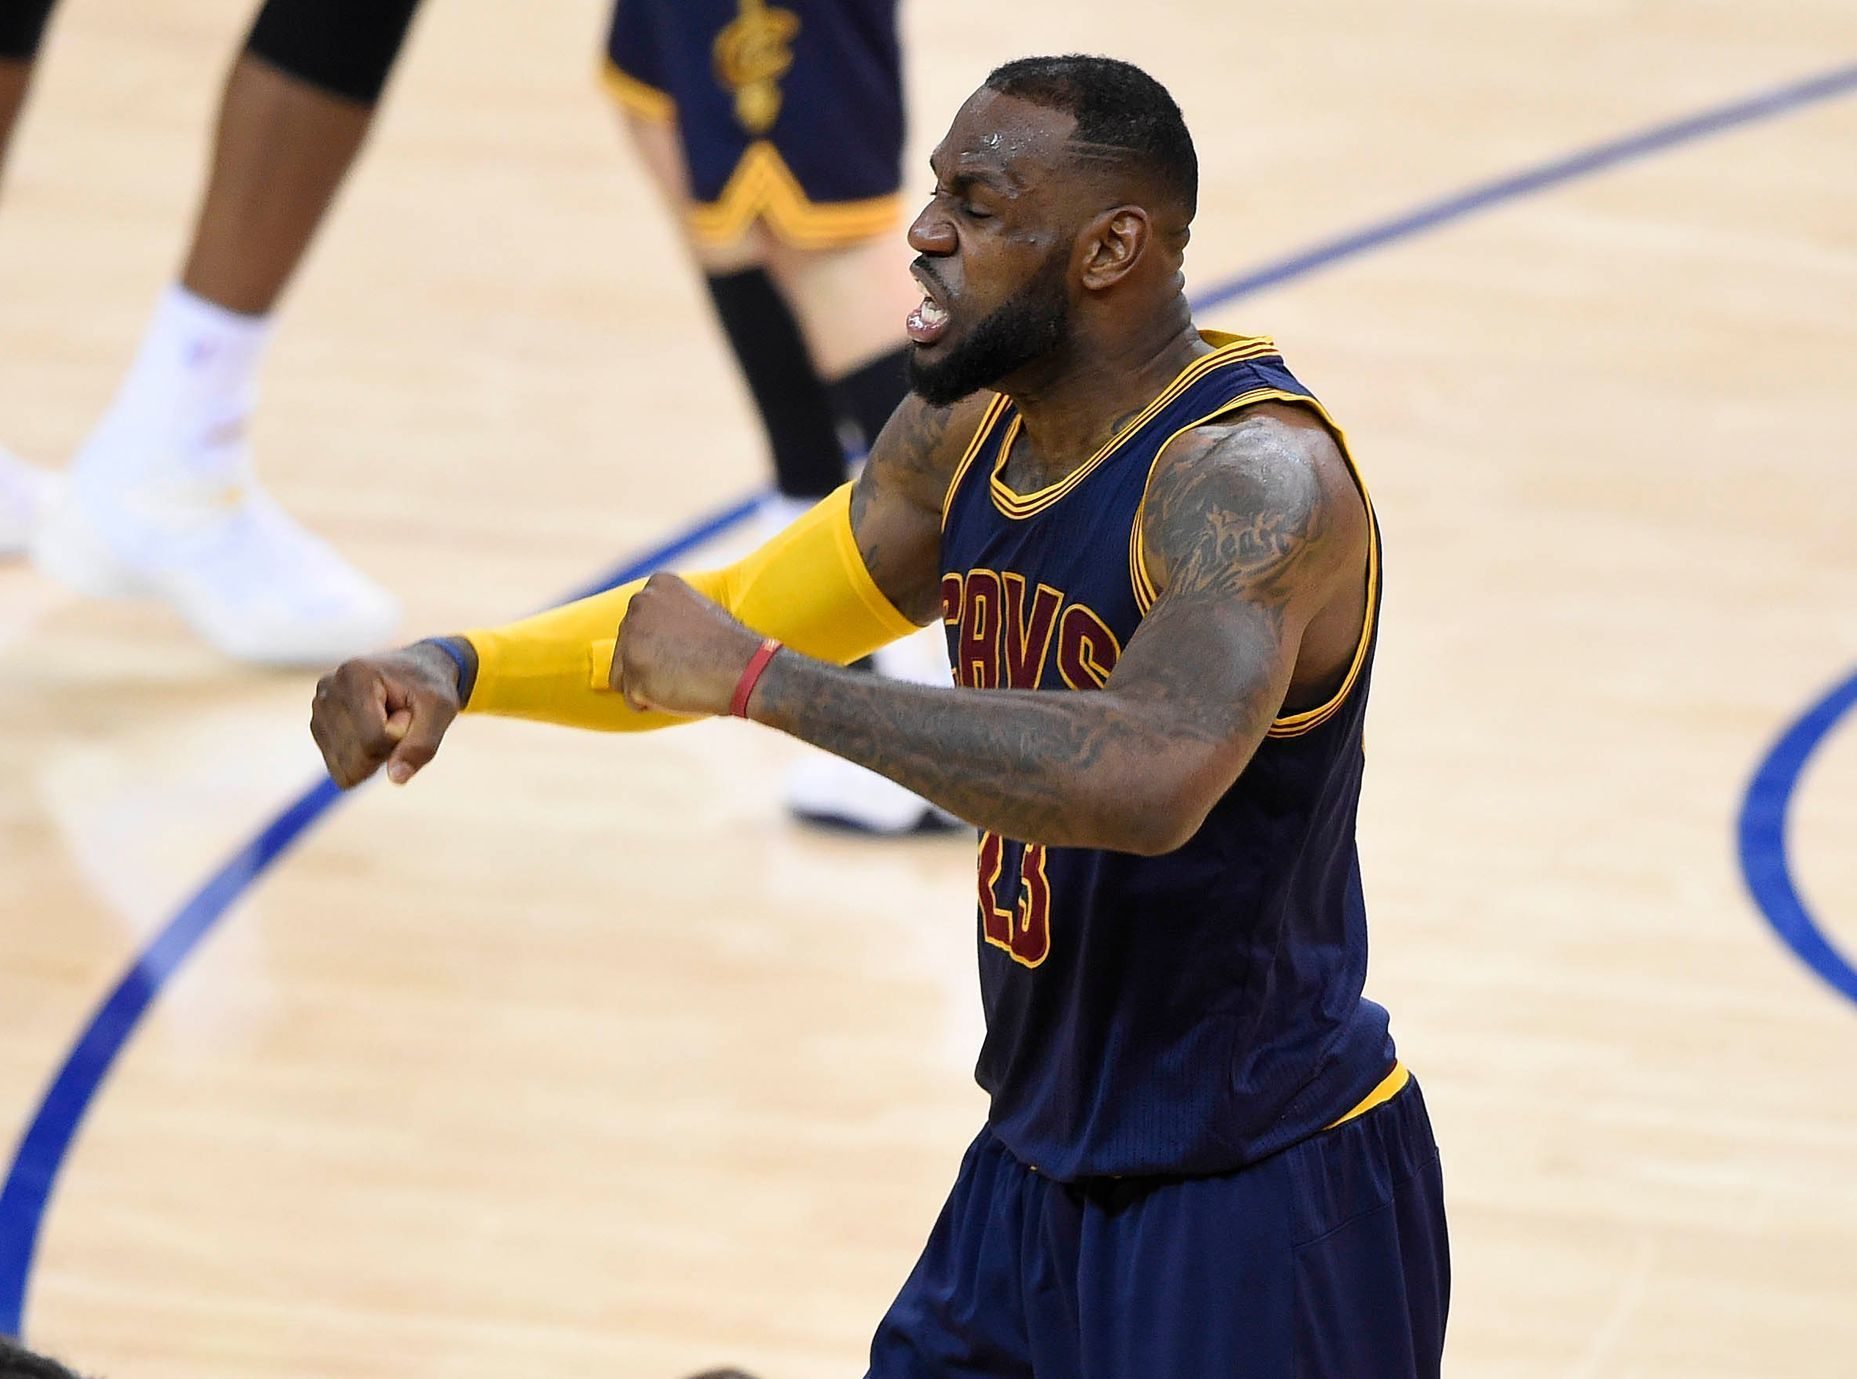 NBA: Playoffs-Cleveland Cavaliers at Golden State Warriors (LeBron James)